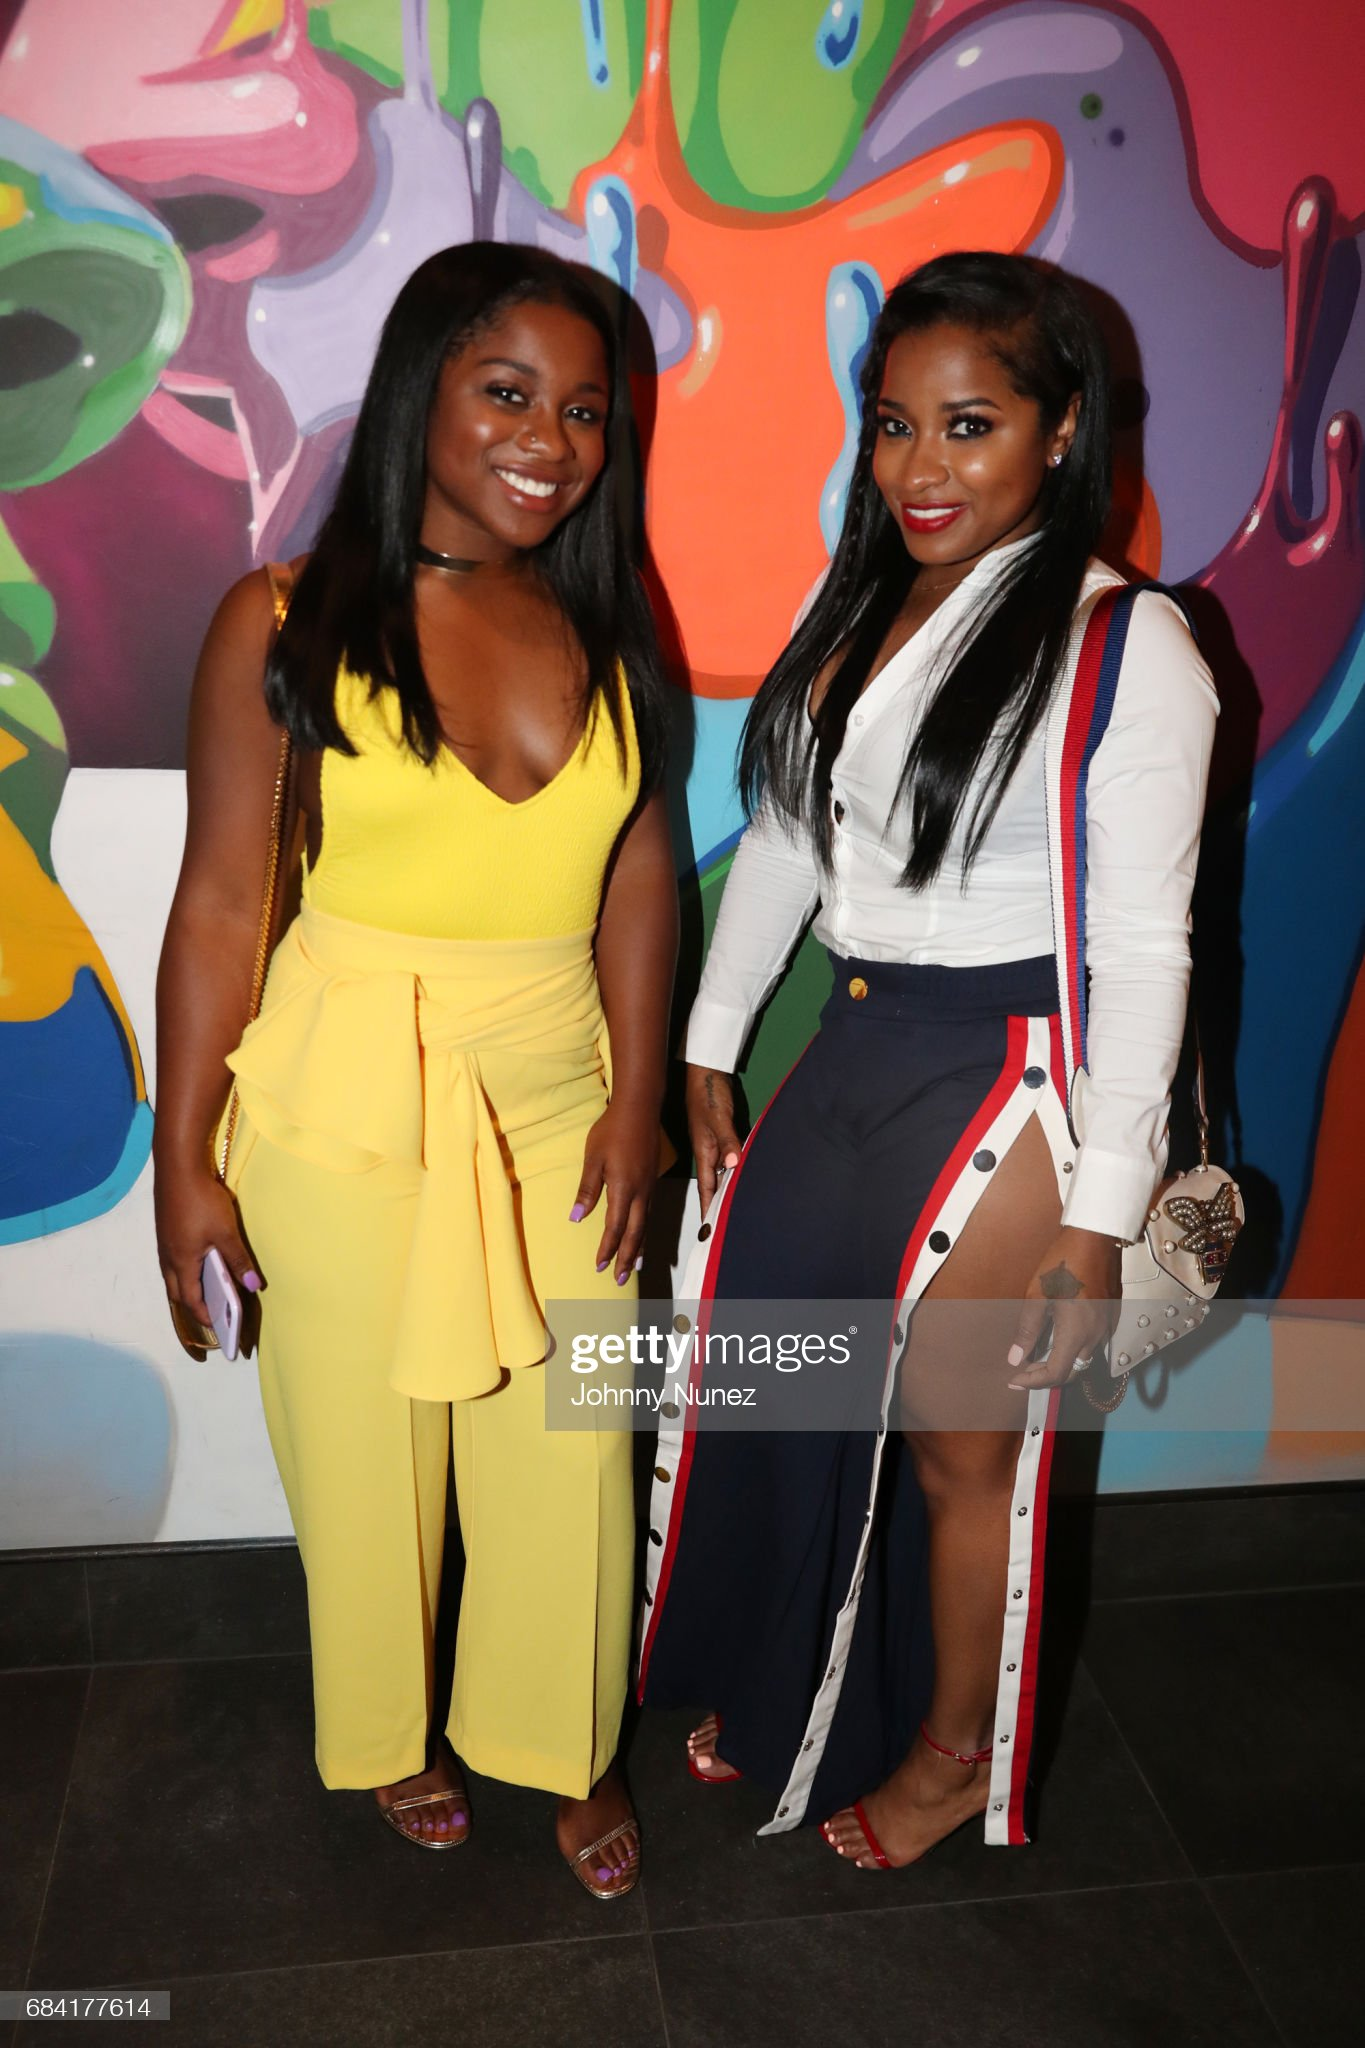 ¿Cuánto mide Toya Wright (Antonia)? - Real height Reginae-carter-and-antonia-wright-attend-the-growing-up-hip-hop-new-picture-id684177614?s=2048x2048